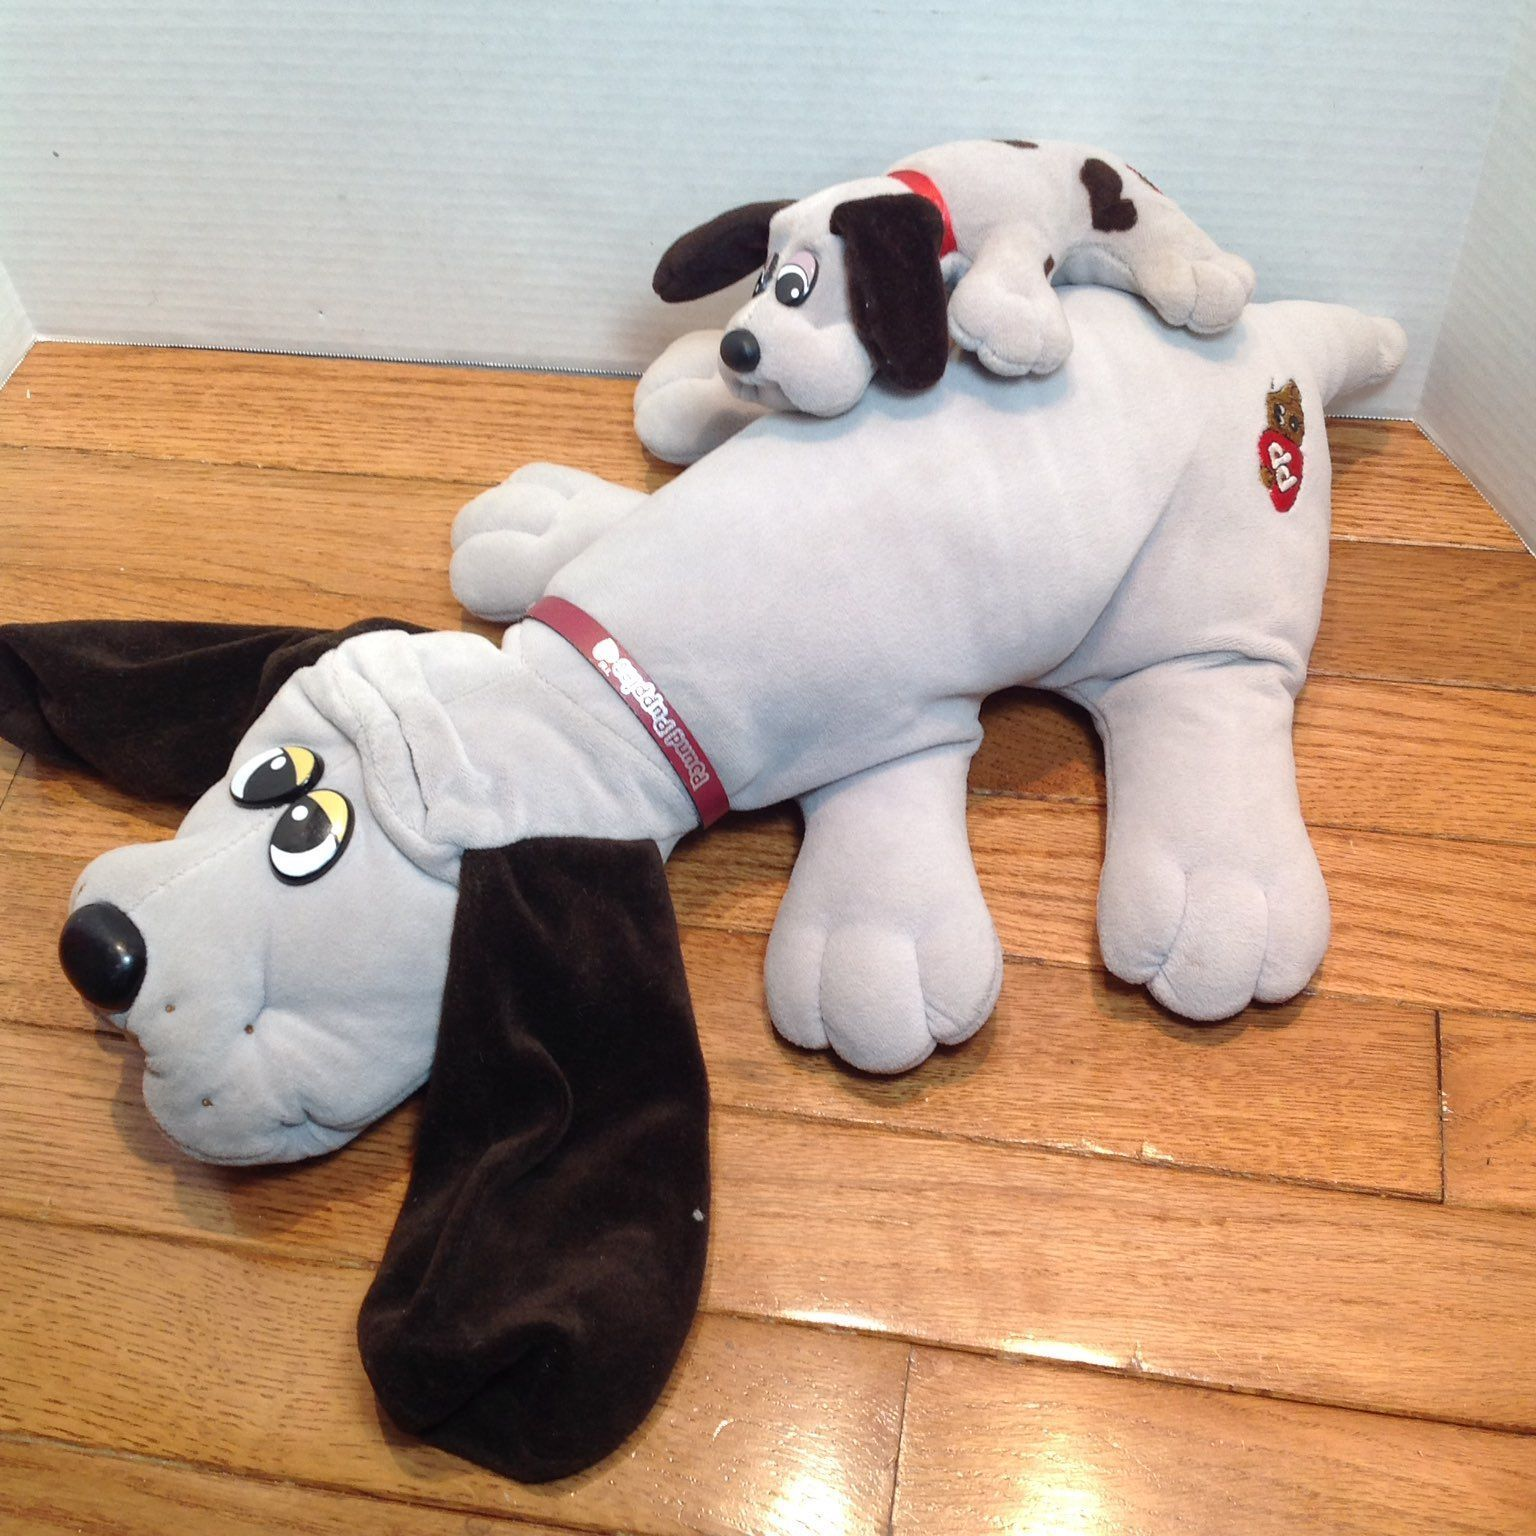 Vintage Tonka POUND PUPPIES Plush Dogs Mercari BUY & SELL